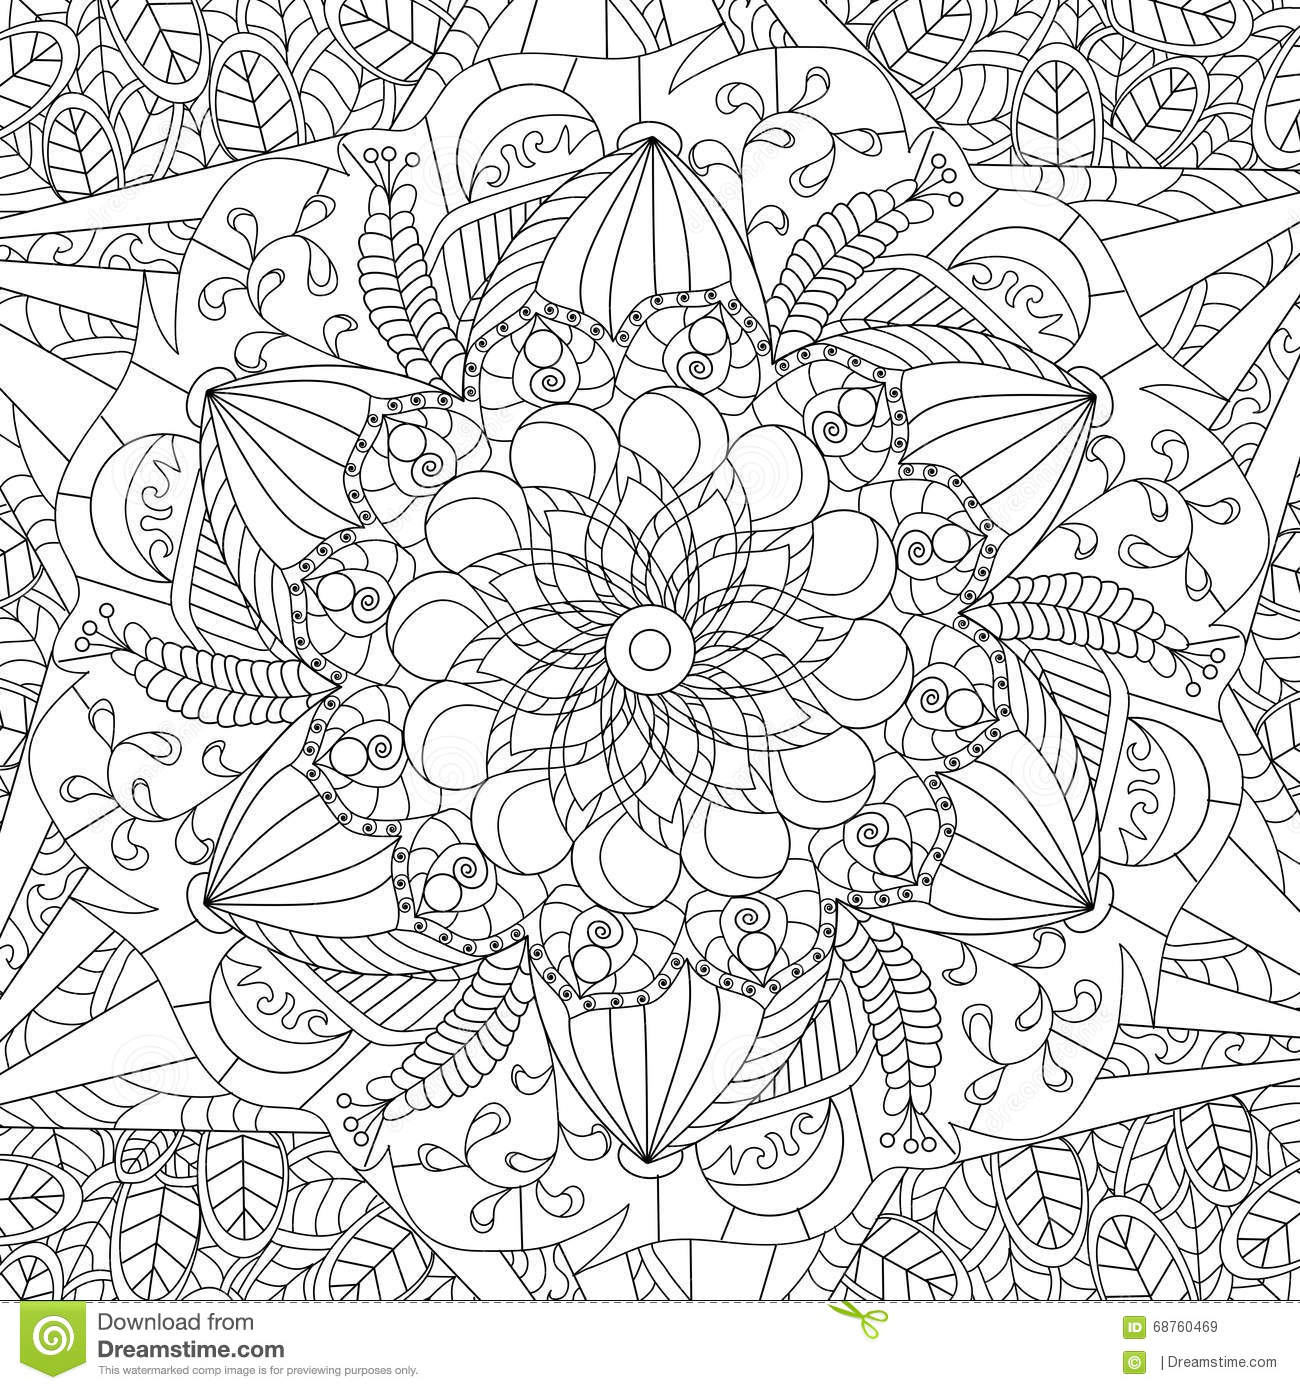 mandala coloring vector for adults stock vector image. Black Bedroom Furniture Sets. Home Design Ideas